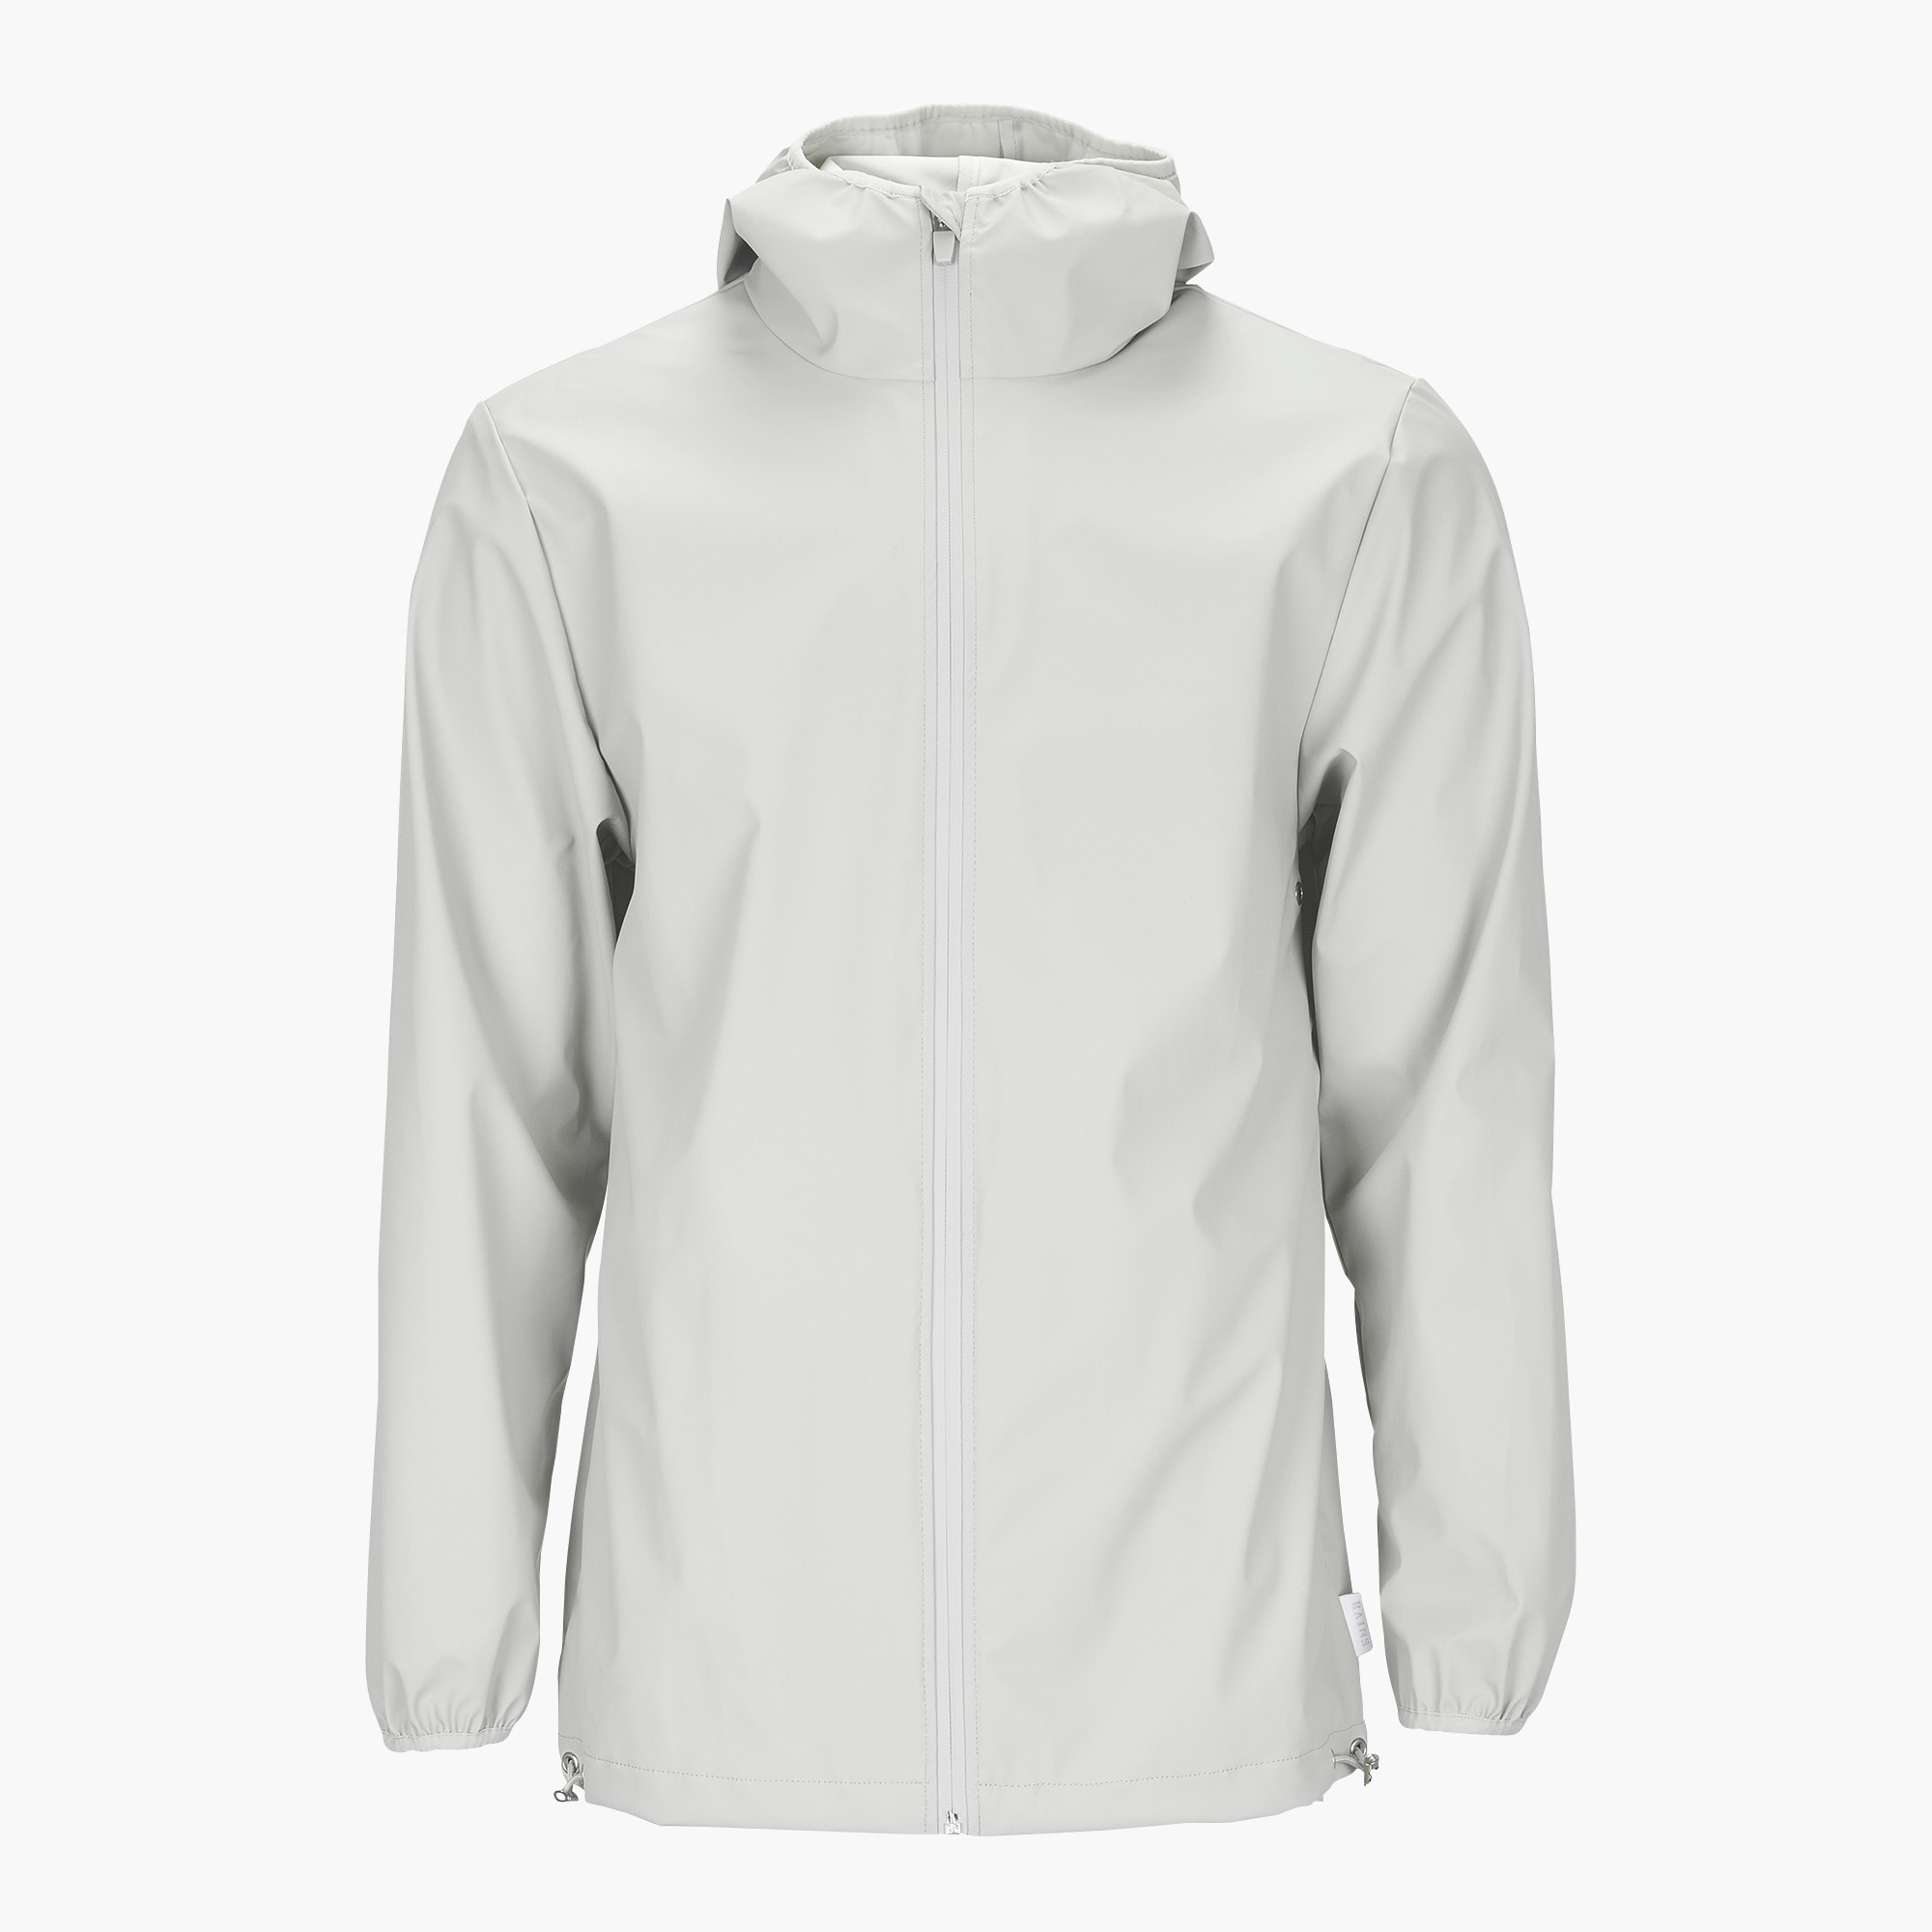 mens Unisex RAINS® base jacket